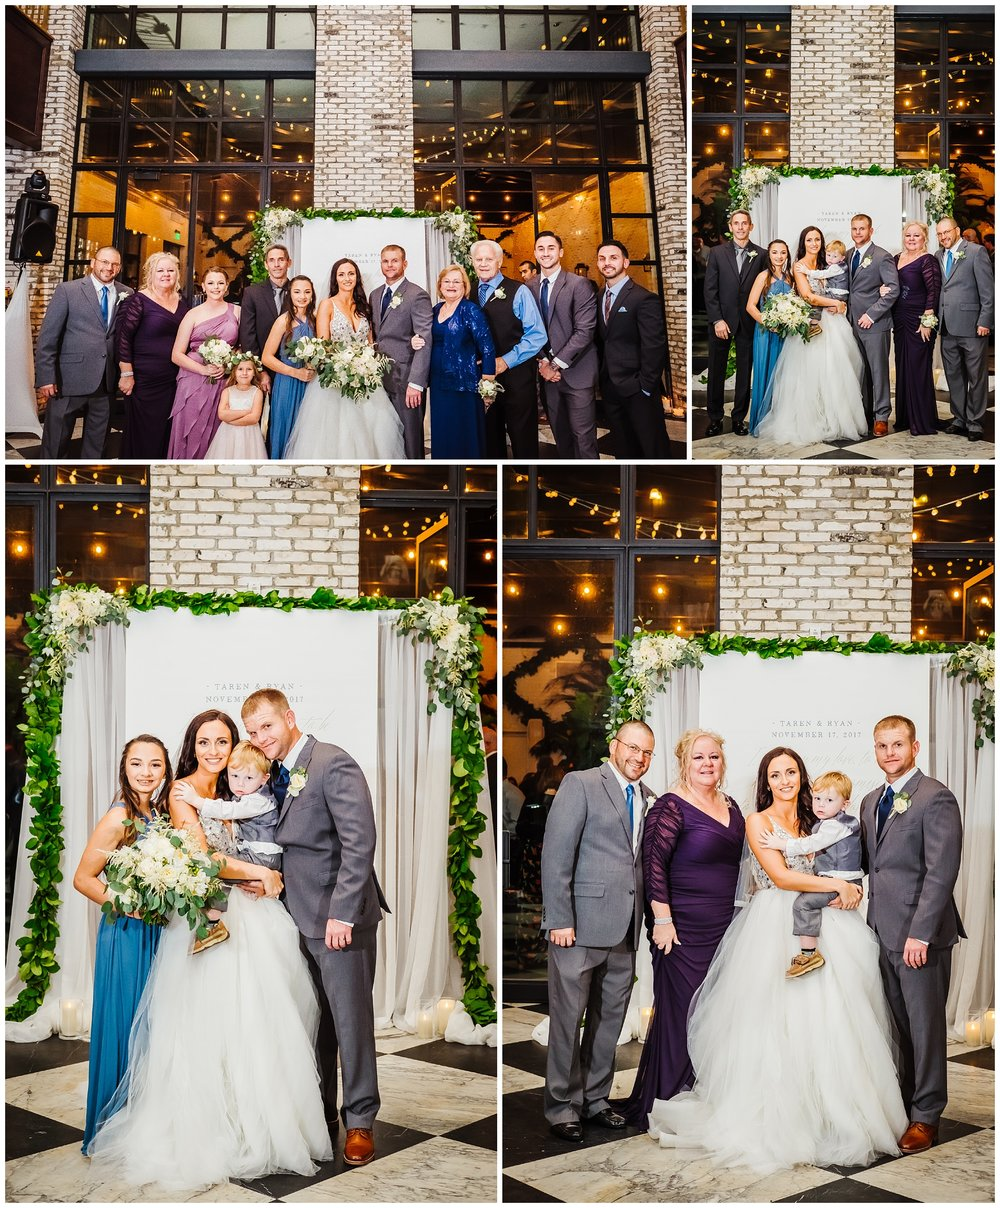 tampa-wedding-photographer-oxford-exchange-garland-candlelight-gold-hayley-paige_0048.jpg